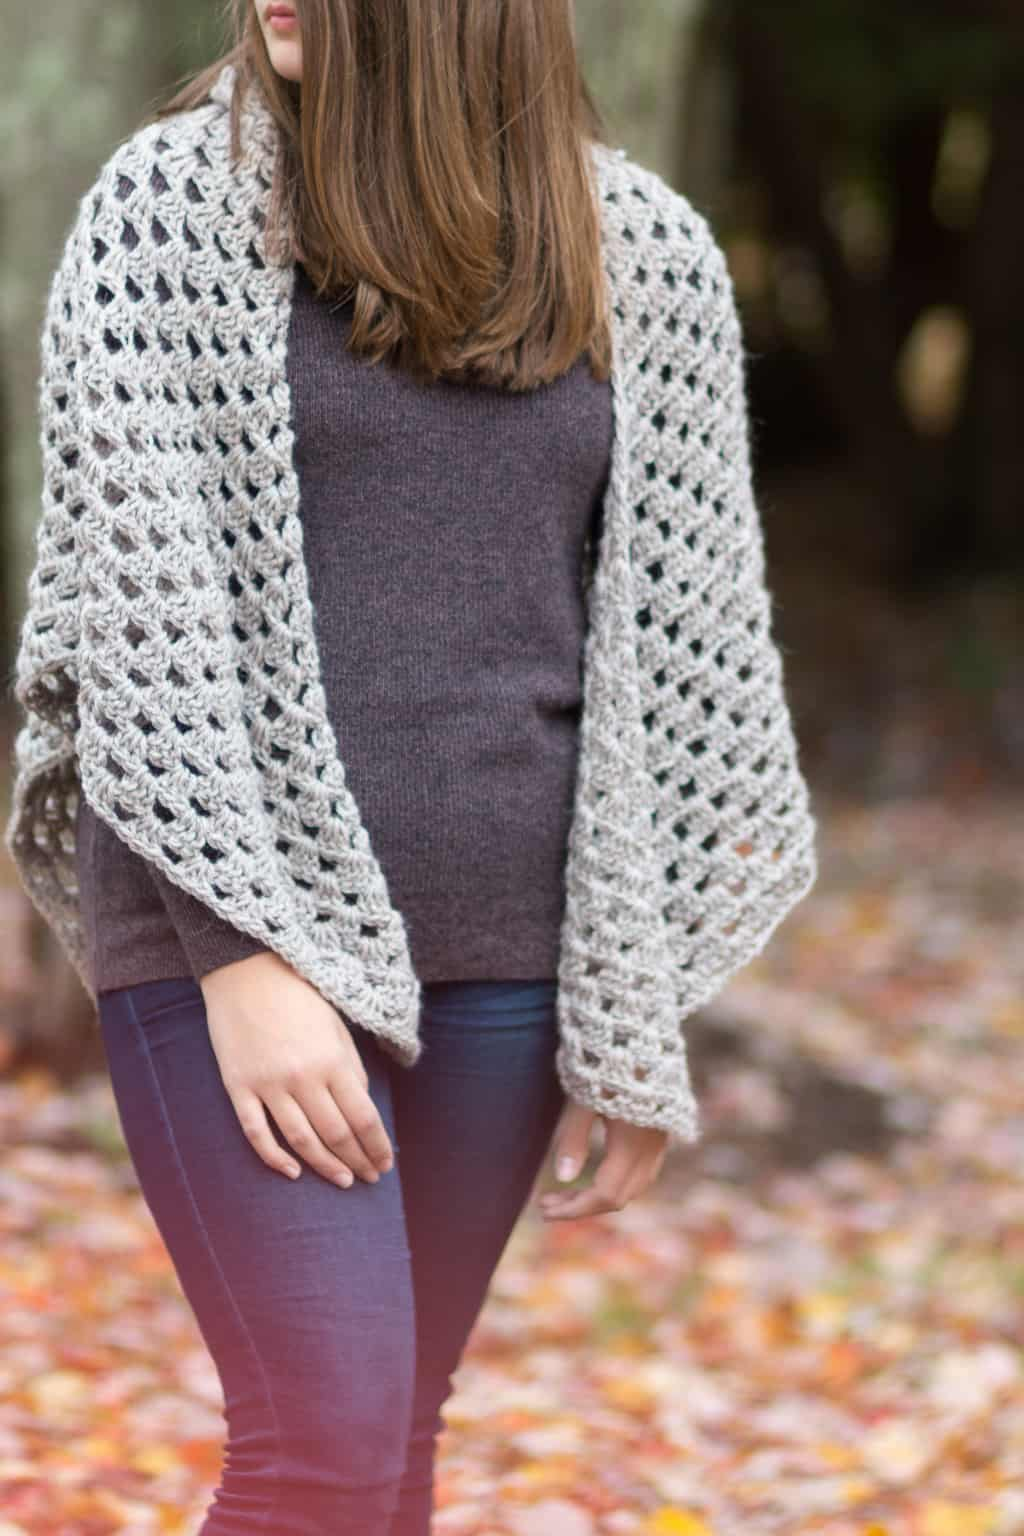 Quick & Easy Granny Shawl Crochet Pattern Free